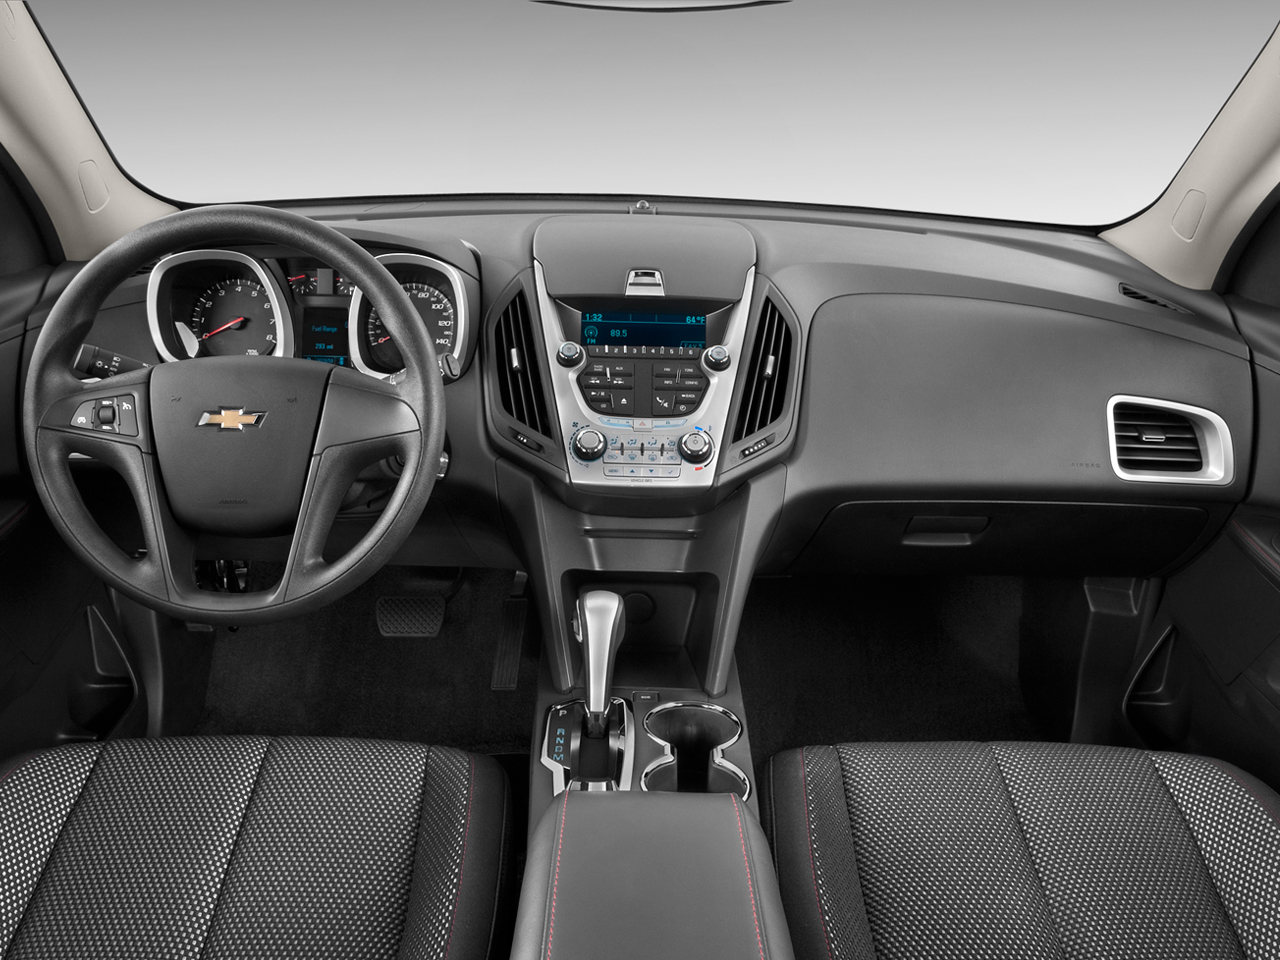 2011 Chevrolet Equinox Vin Number Search